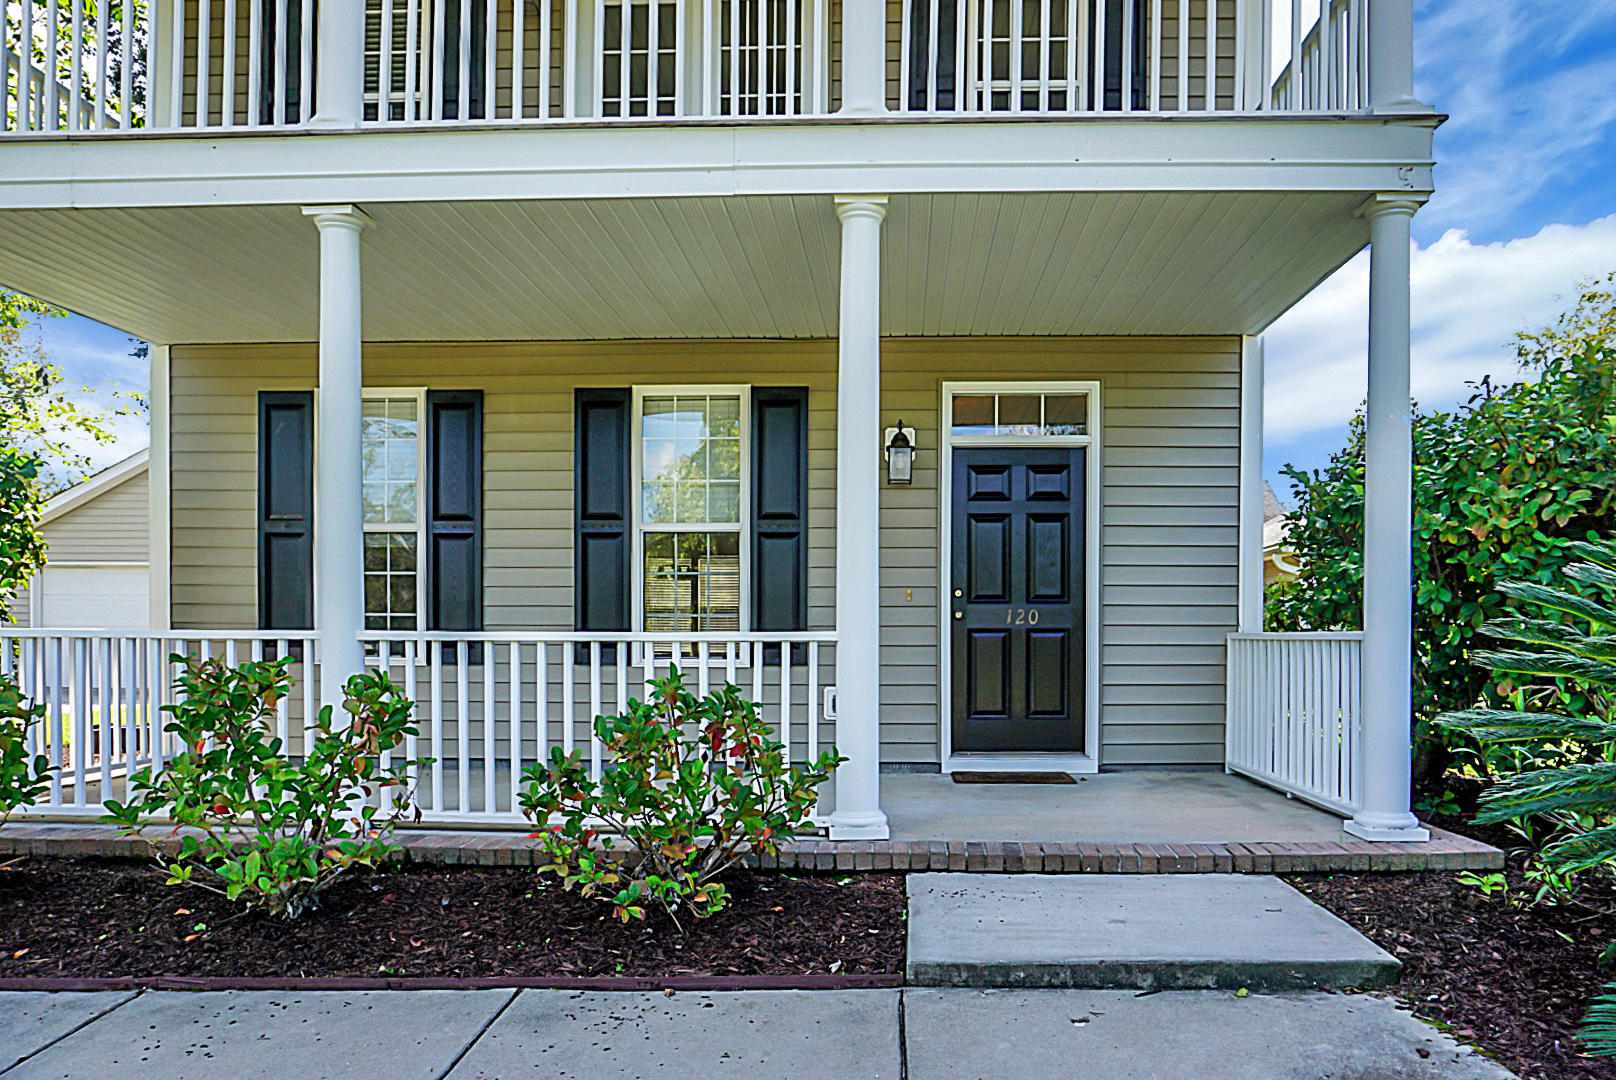 Heatherwoods Homes For Sale - 120 Full Moon, Ladson, SC - 39